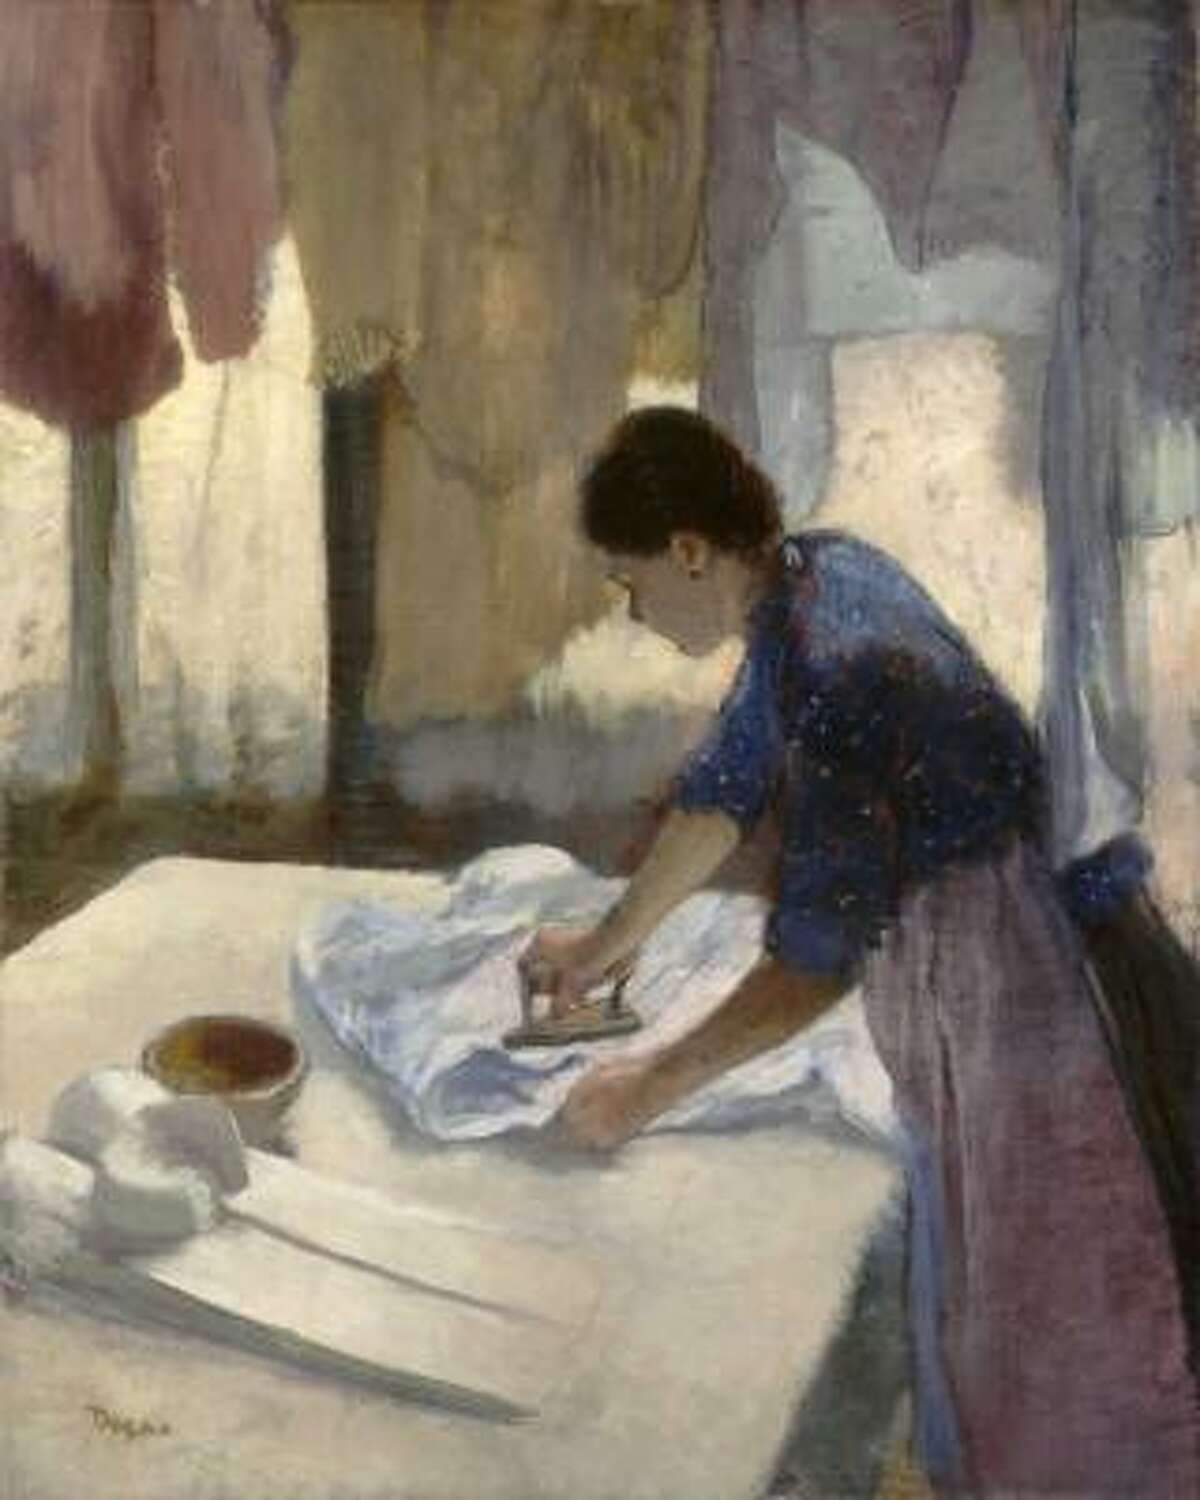 Edgar Degas, French, 1834-1917 Woman Ironing Begun c. 1876, completed c. 1887 Oil on canvas The National Gallery of Art, Washington, D.C., Collection of Mr. and Mrs. Paul Mellon, 1972.74.1